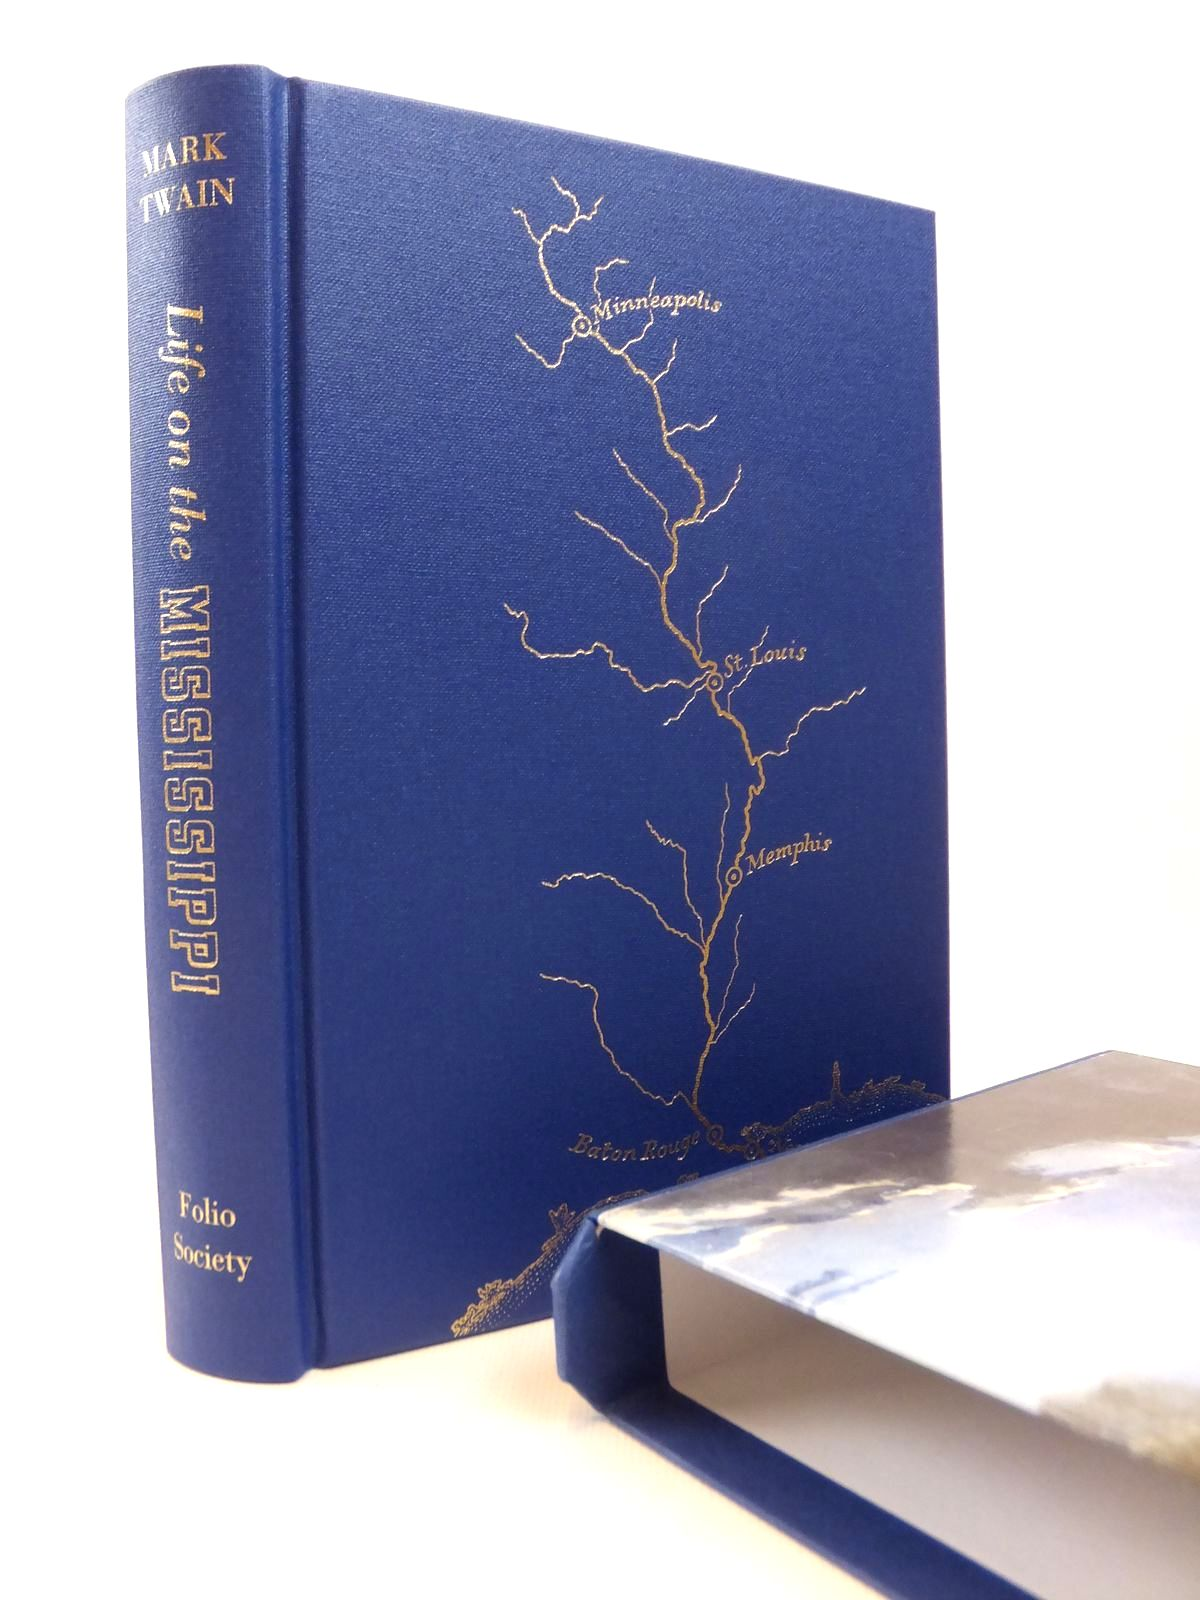 Photo of LIFE ON THE MISSISSIPPI written by Twain, Mark published by Folio Society (STOCK CODE: 1812598)  for sale by Stella & Rose's Books